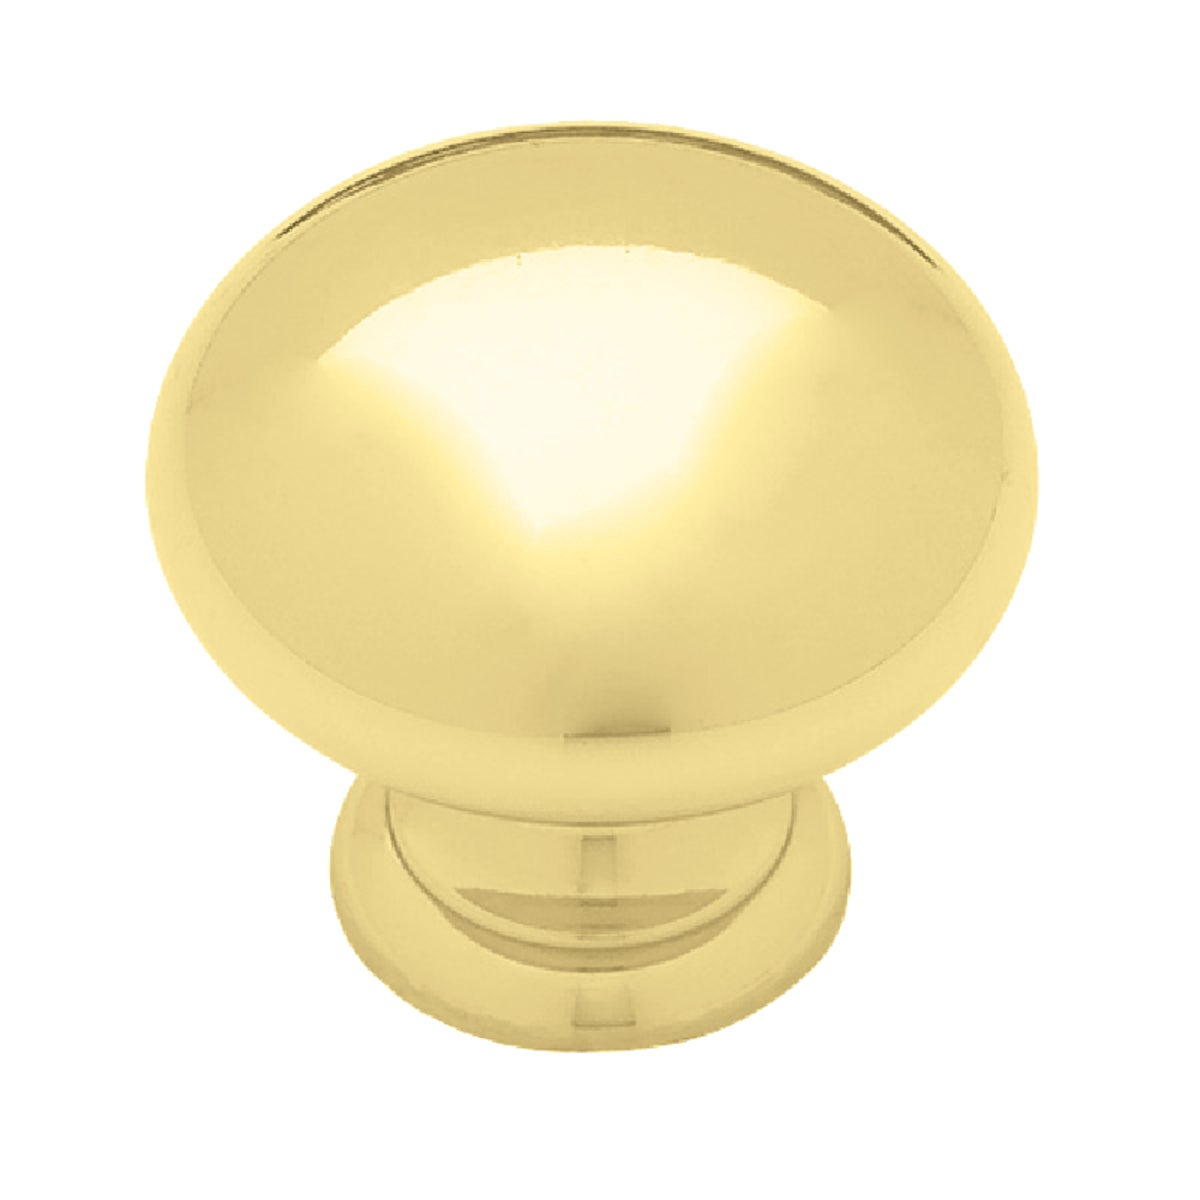 "1-3/8"" SOLID BRASS KNOB - 40701 by Laurey Co"